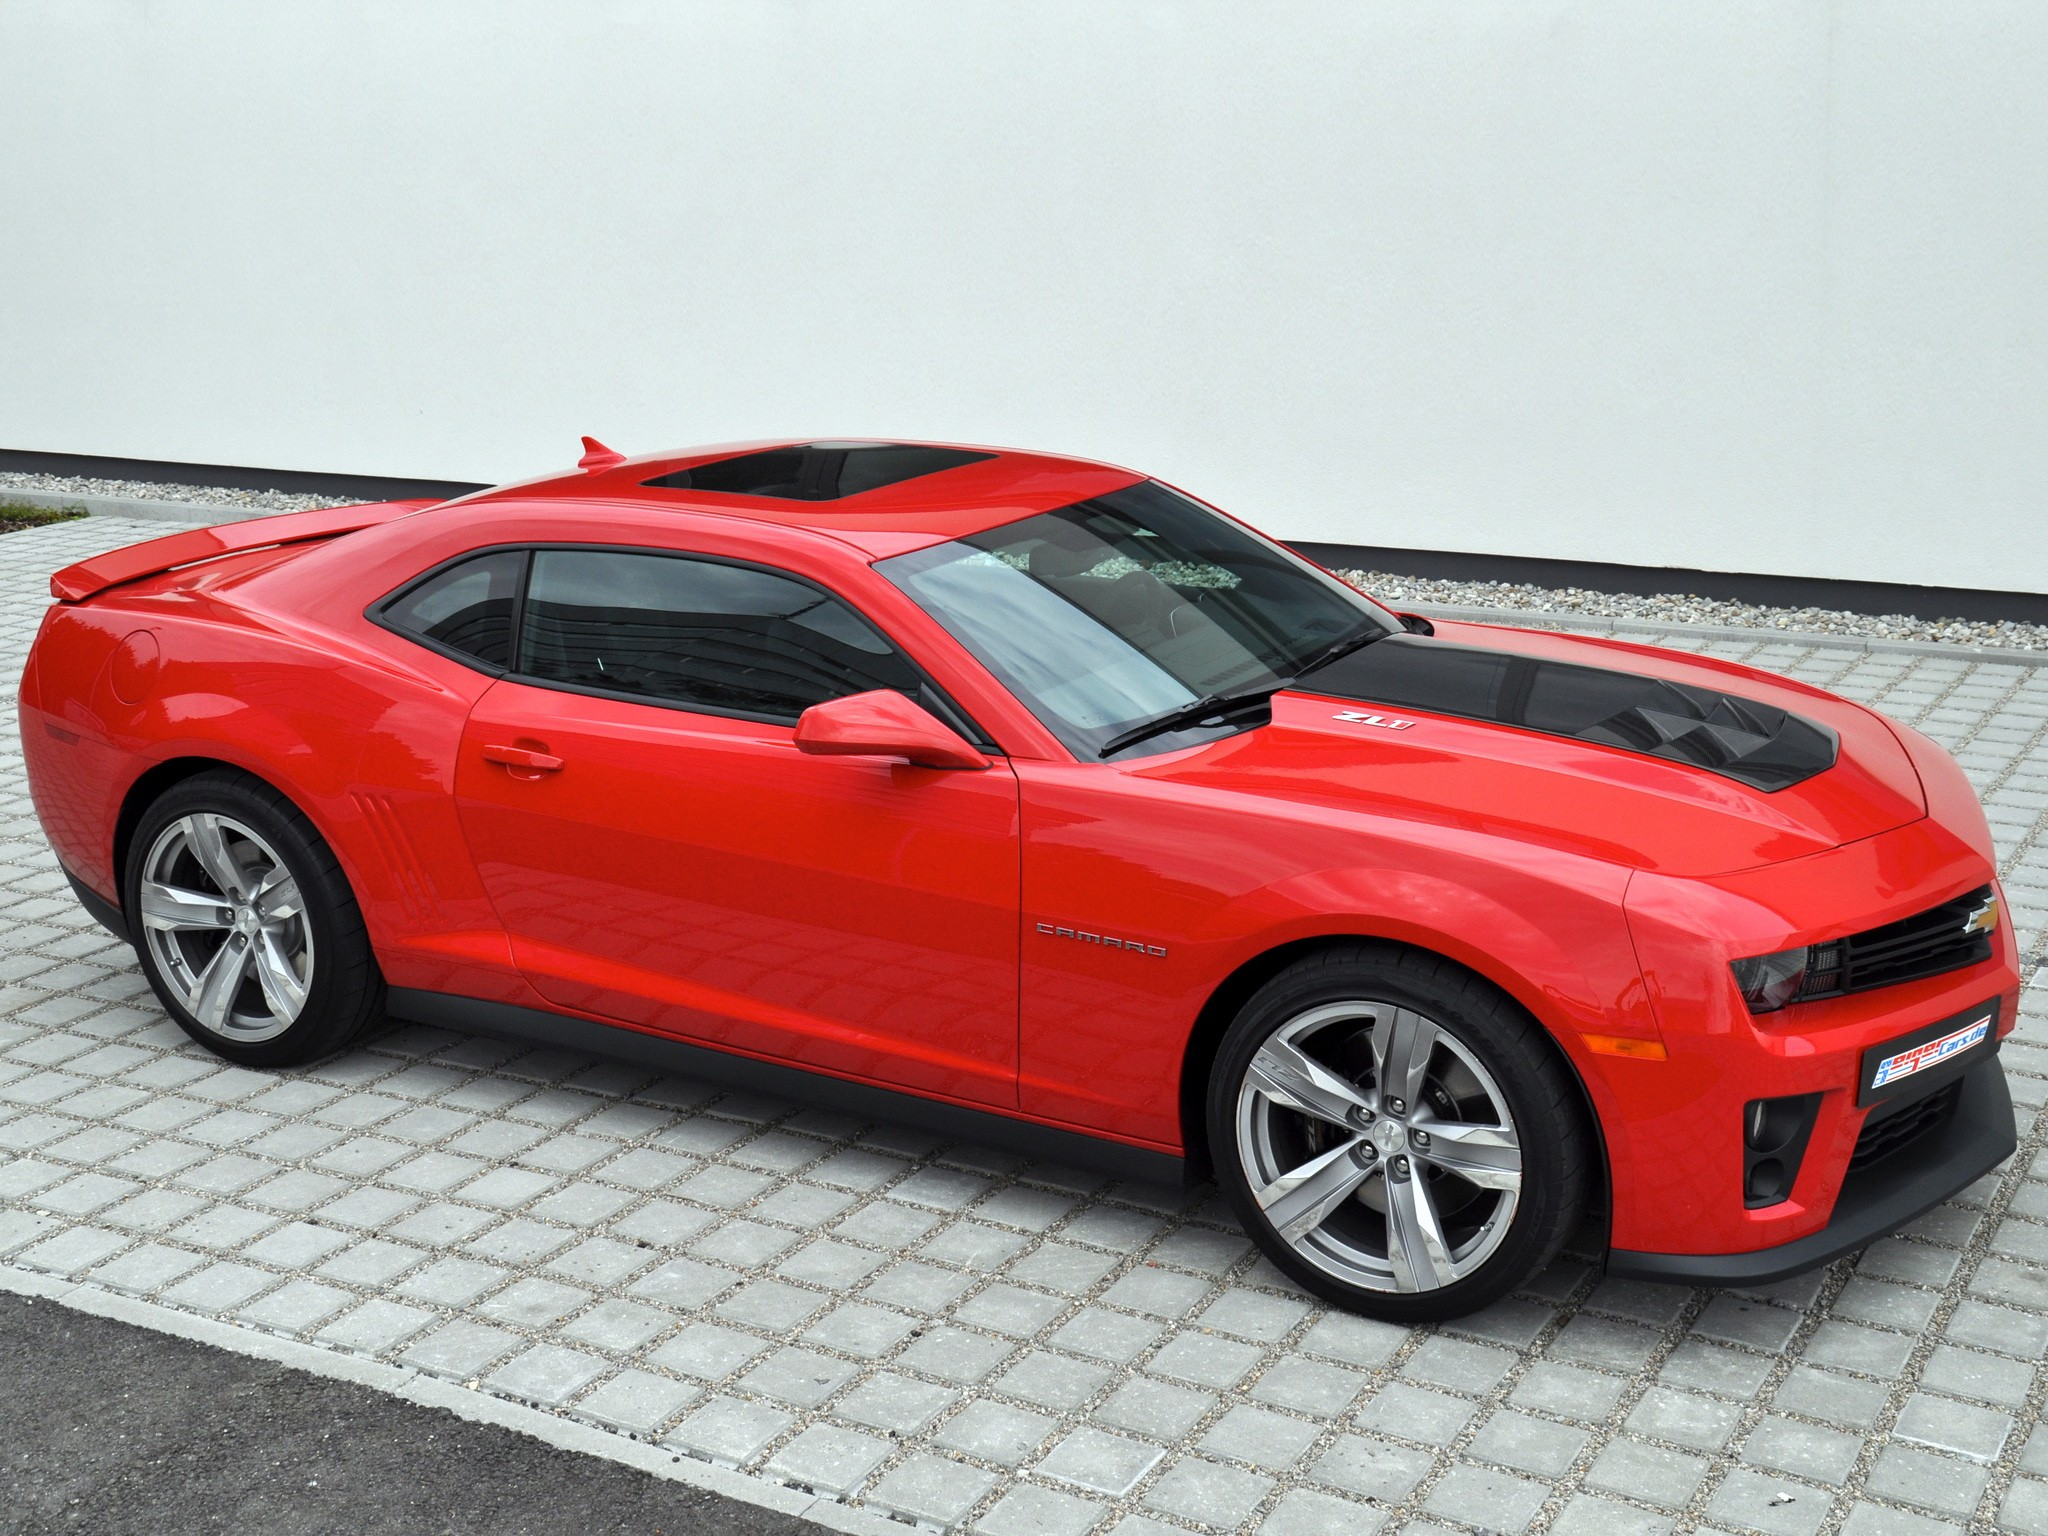 Chevrolet Camaro Zl1 Specs Amp Photos 2012 2013 2014 2015 2016 2017 2018 2019 Autoevolution